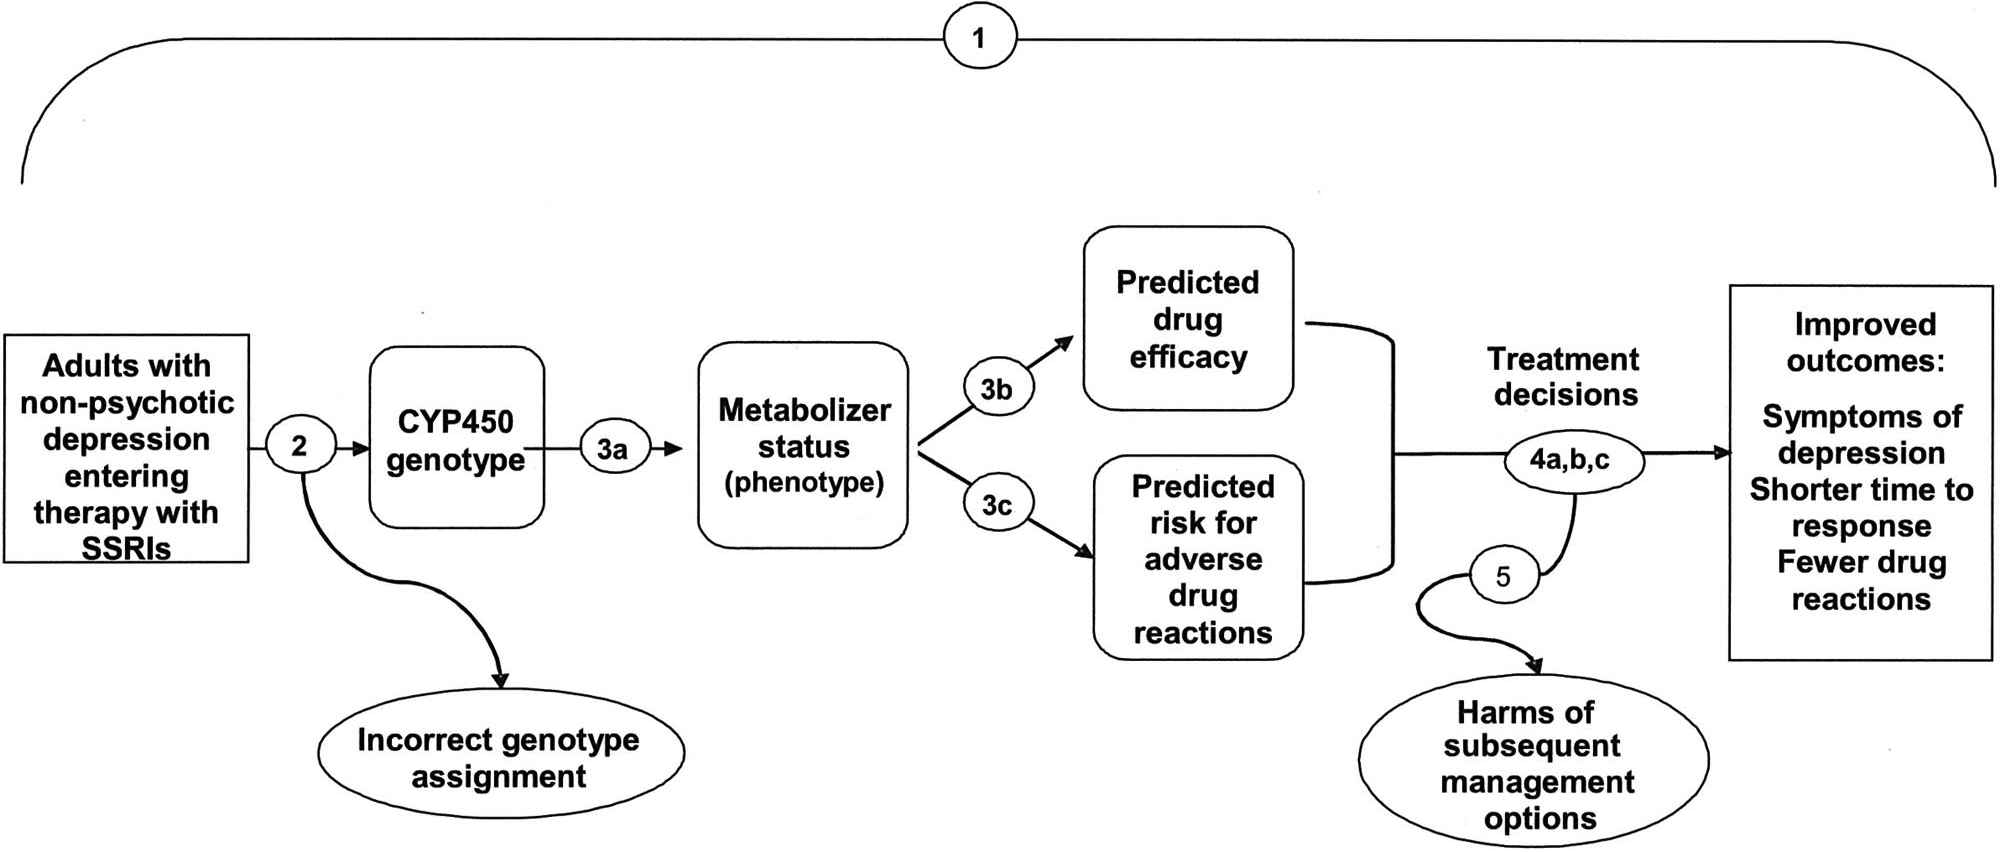 Box VI-4. Analytic Framework: CYP450 Genotype Testing for Selective Serotonin Reuptake Inhibitors.  The numbers above correspond to the following key questions: 1. Overarching question: Does testing for cytochrome P450  <em>(CYP450)</em>  polymorphisms in adults entering selective serotonin reuptake inhibitor (SSRI) treatment for nonpsychotic depression lead to improvement in outcomes, or are testing results useful in medical, personal, or public health decision-making? 2. What is the analytic validity of tests that identify key  <em>CYP450</em>  polymorphisms? 3. Clinical validity:  a: How well do particular  <em>CYP450</em>  genotypes predict metabolism of particular SSRIs? b: How well does  <em>CYP450</em>  testing predict drug efficacy? c: Do factors such as race/ethnicity, diet, or other medications, affect these associations?  4. Clinical utility:  a: Does  <em>CYP450</em>  testing influence depression management decisions by patients and providers in ways that could improve or worsen outcomes? b: Does the identification of the  <em>CYP450</em>  genotypes in adults entering SSRI treatment for nonpsychotic depression lead to improved clinical outcomes compared to not testing? c: Are the testing results useful in medical, personal, or public health decision-making? 5. What are the harms associated with testing for  <em>CYP450</em>  polymorphisms and subsequent management options?